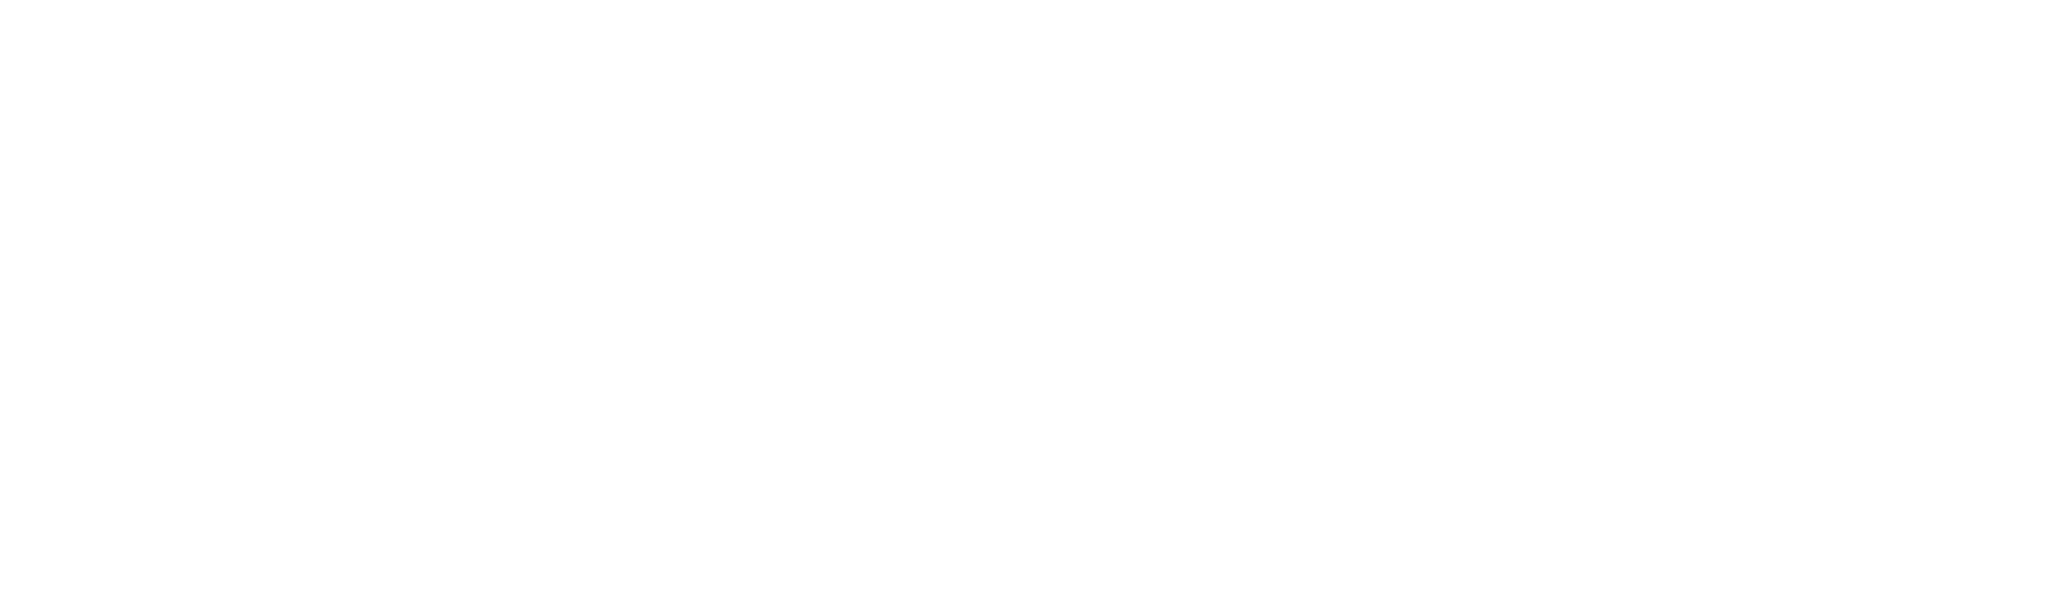 Shopfloor Management Systems